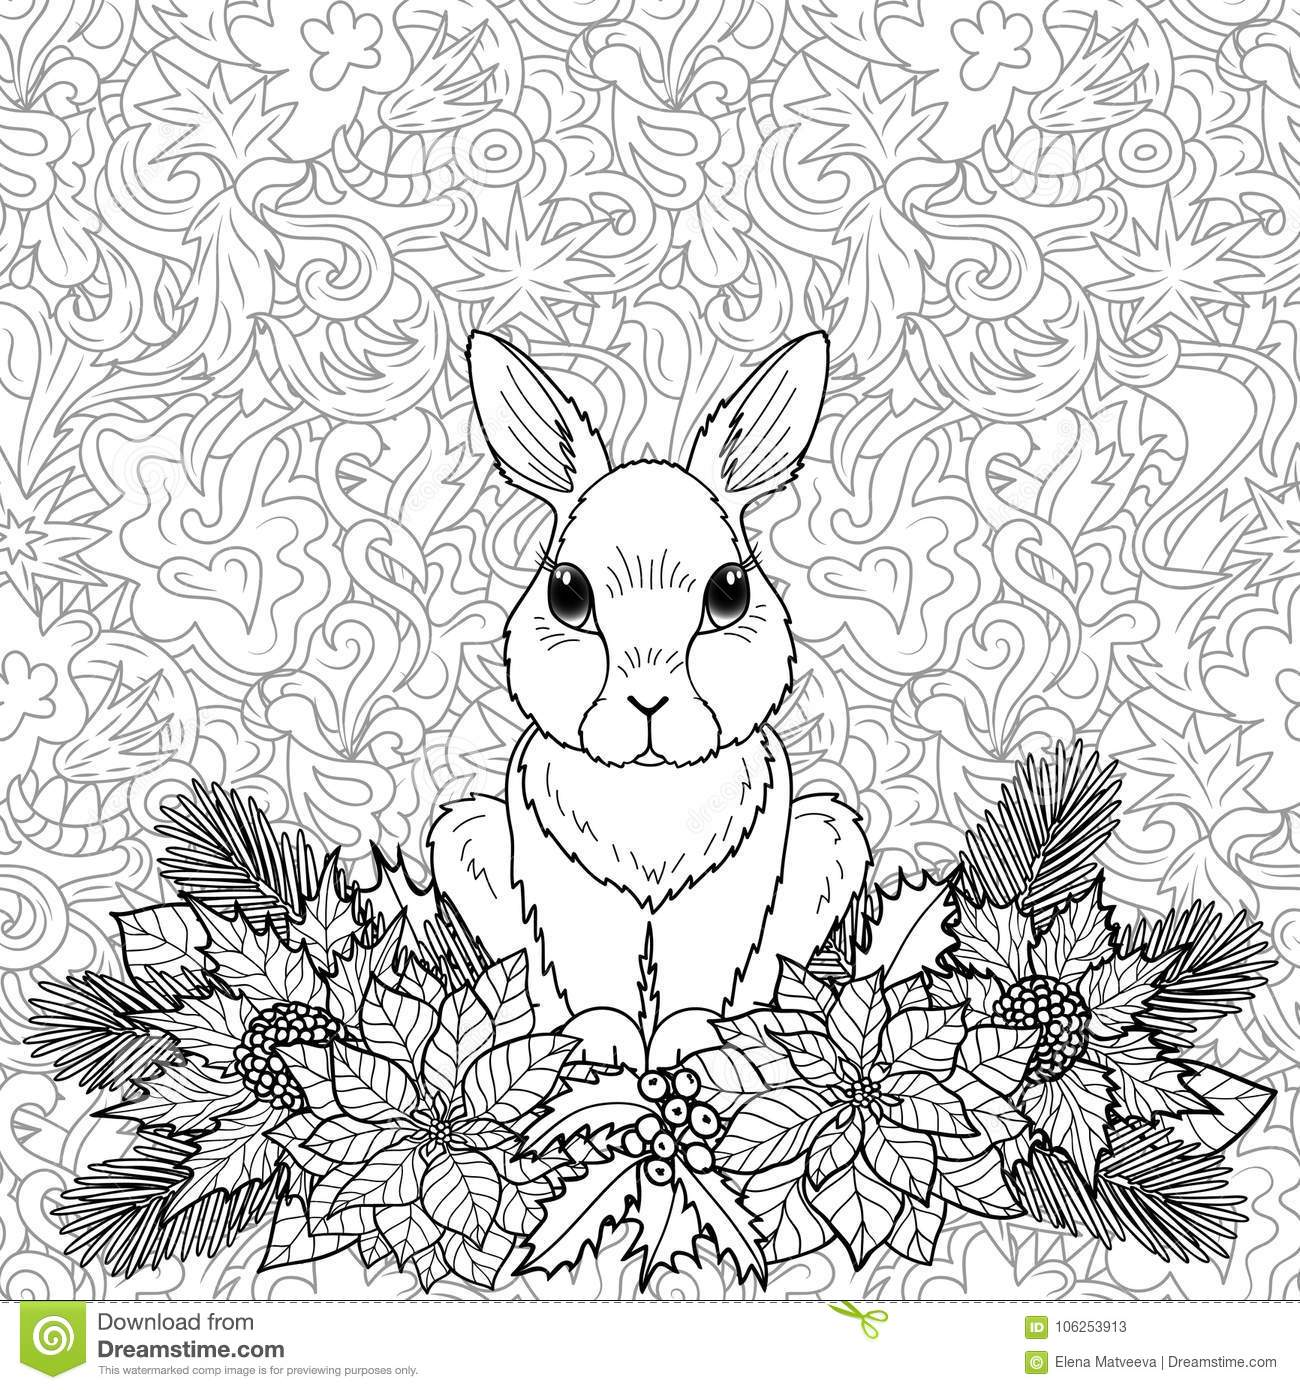 winter coloring page with rabbit stock vector illustration of drawing isolated 106253913. Black Bedroom Furniture Sets. Home Design Ideas